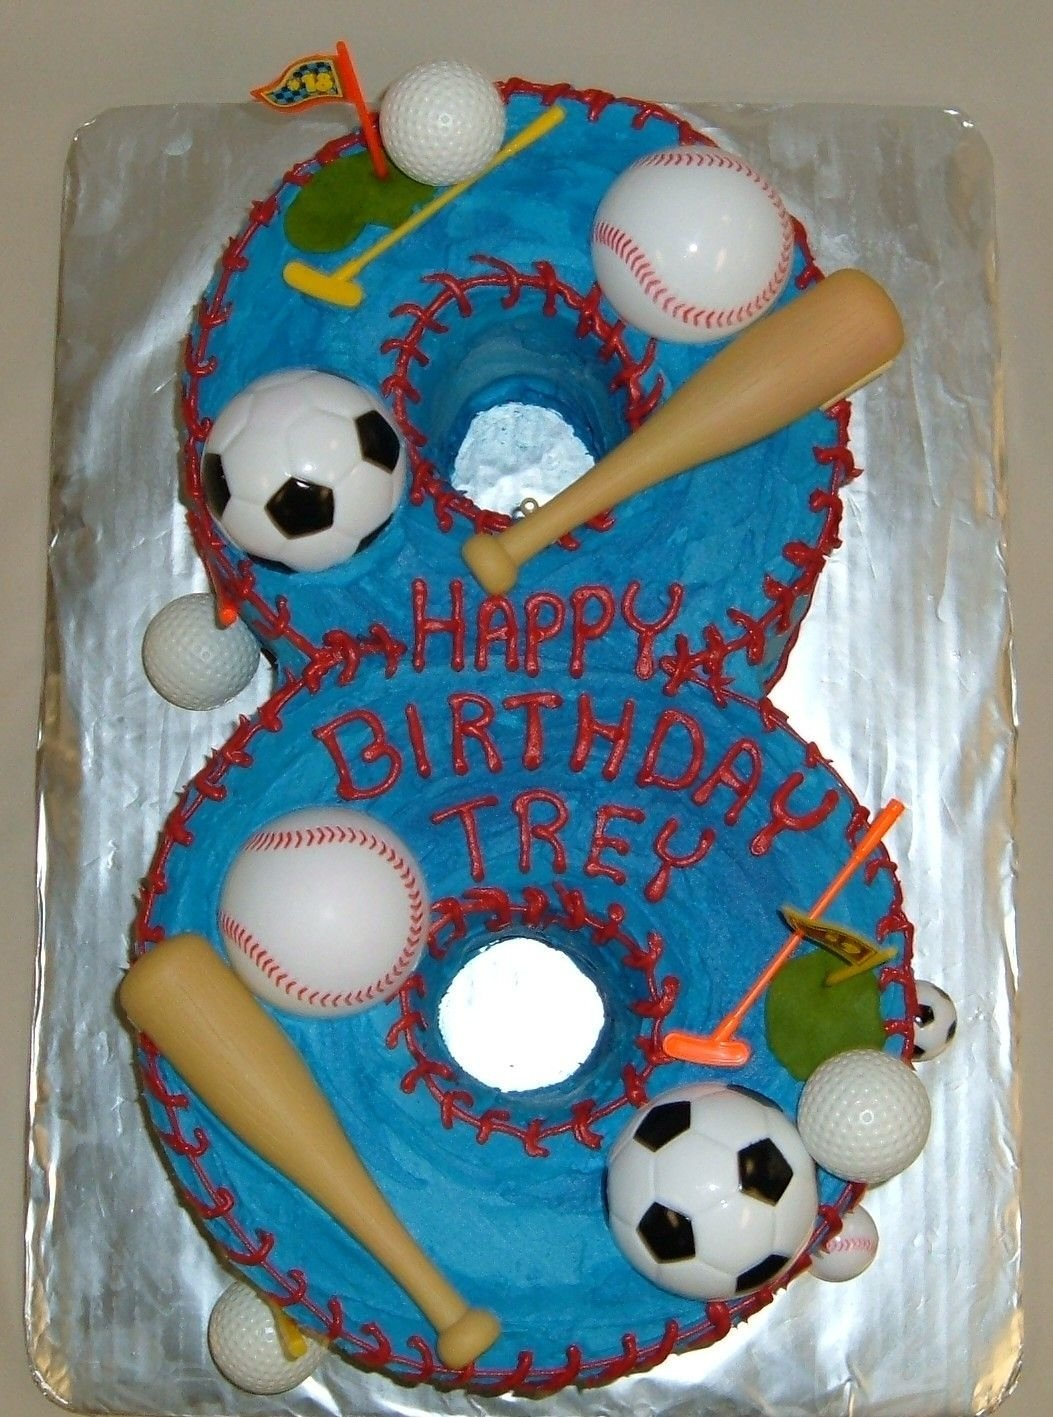 10 Most Popular Boys 8Th Birthday Party Ideas custom shaped numeral sports cake happy 8th birthday trey custom 2020